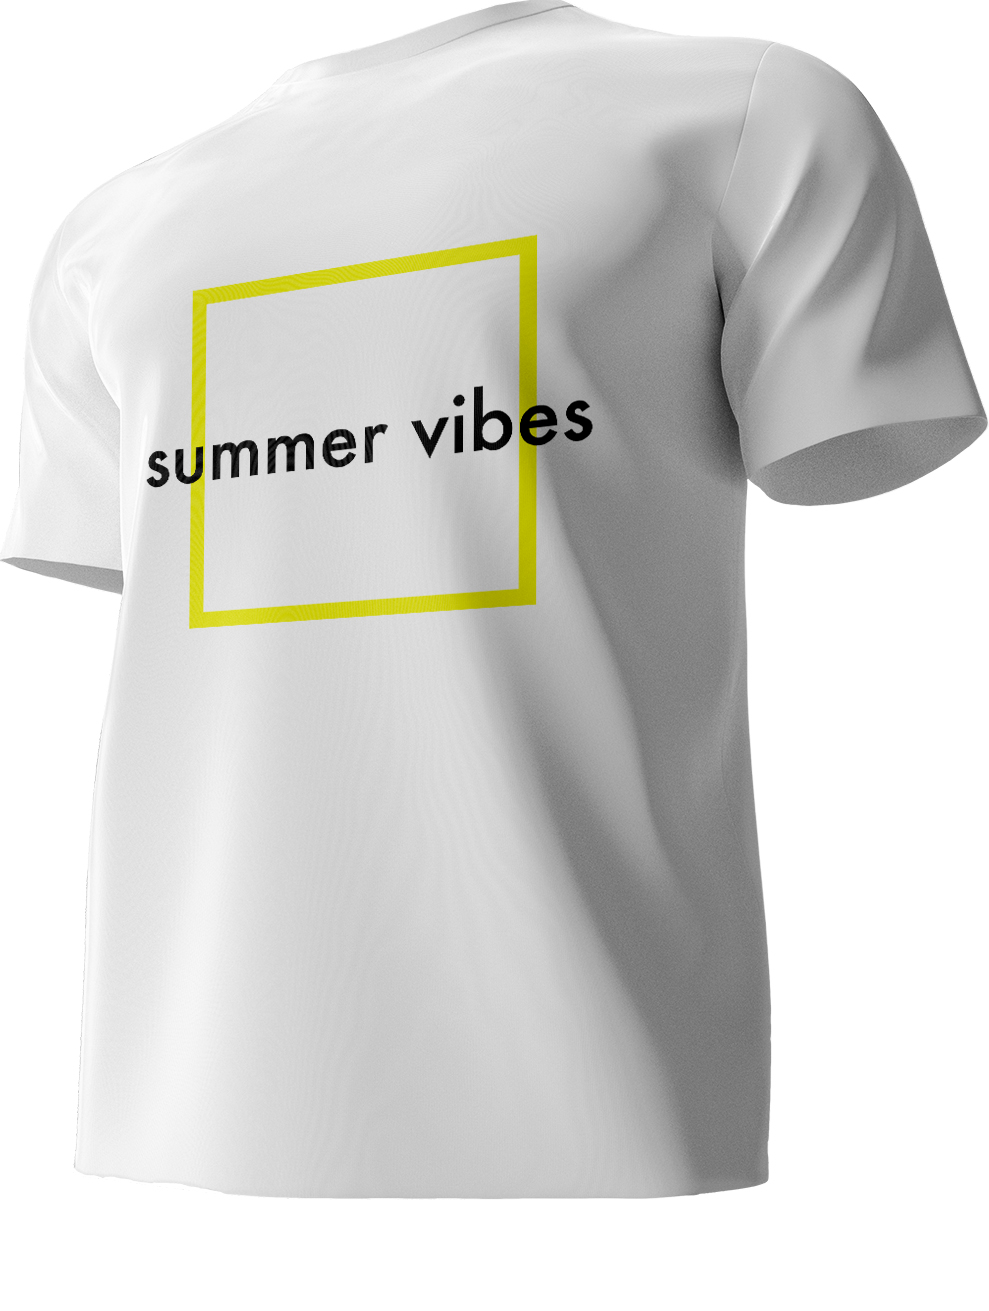 t-shirt personalizzate